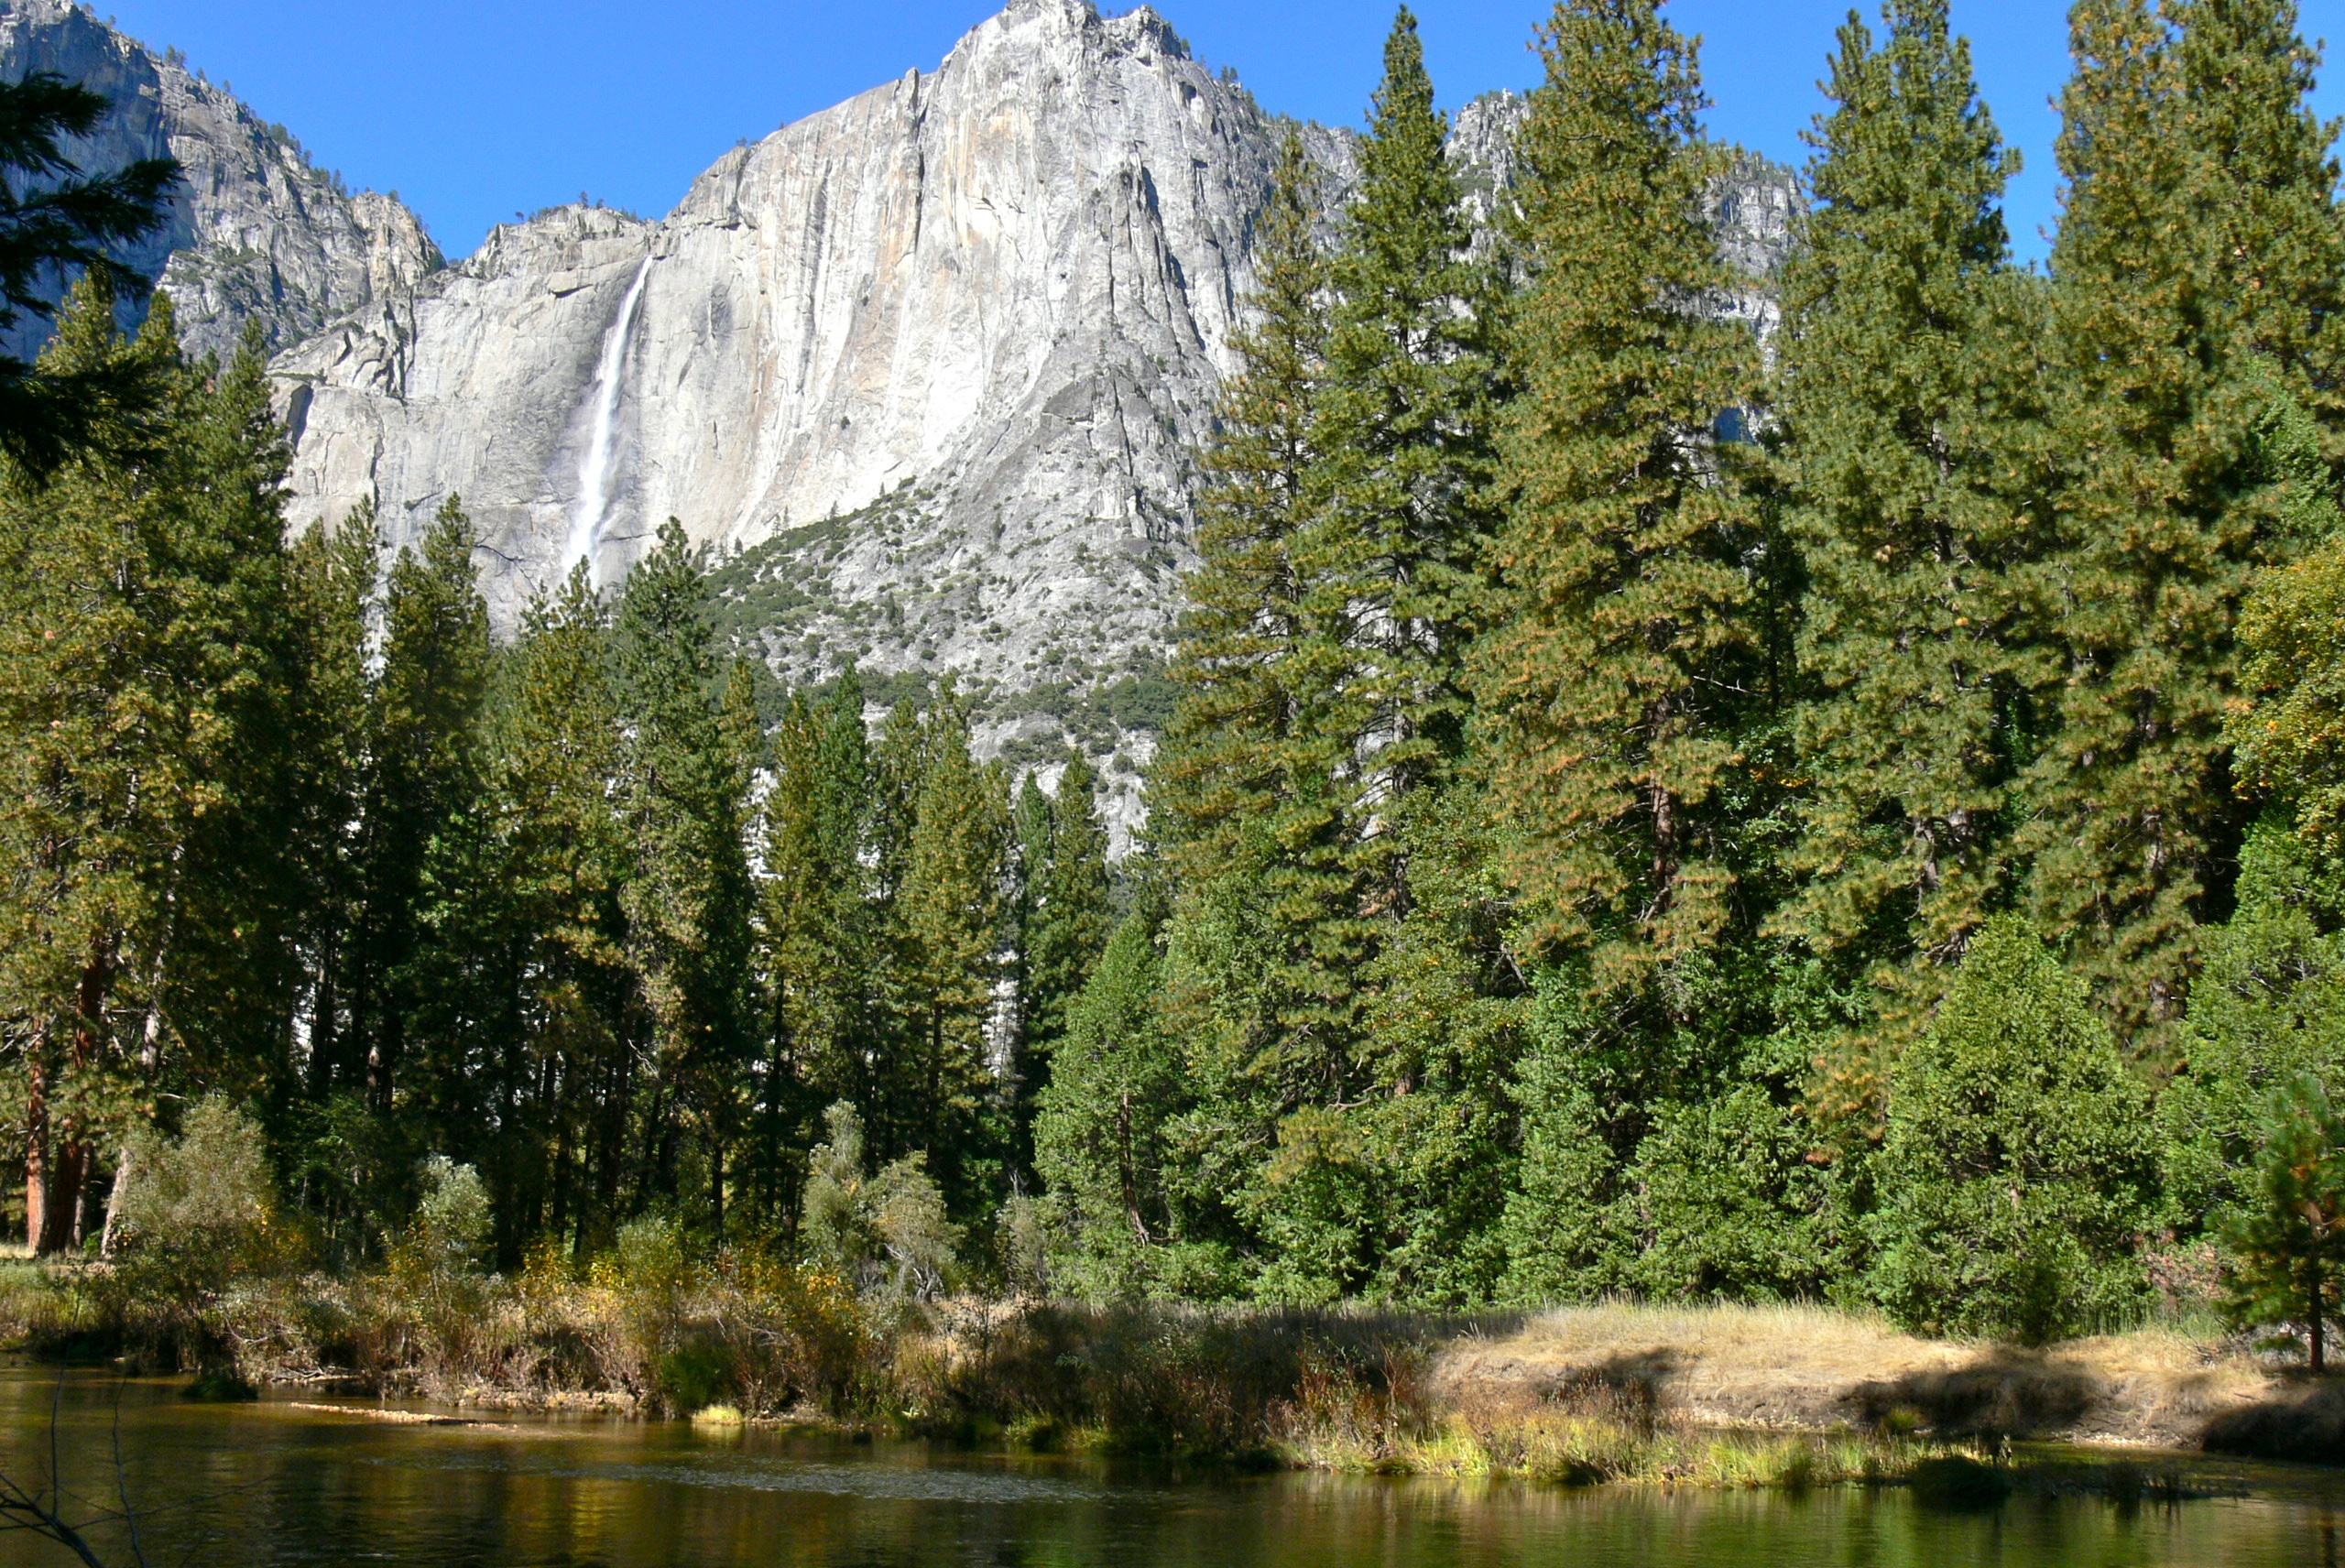 Grasslands and intervening rock faces support a variety of animals. Sierra Nevada Lower Montane Forest Wikipedia